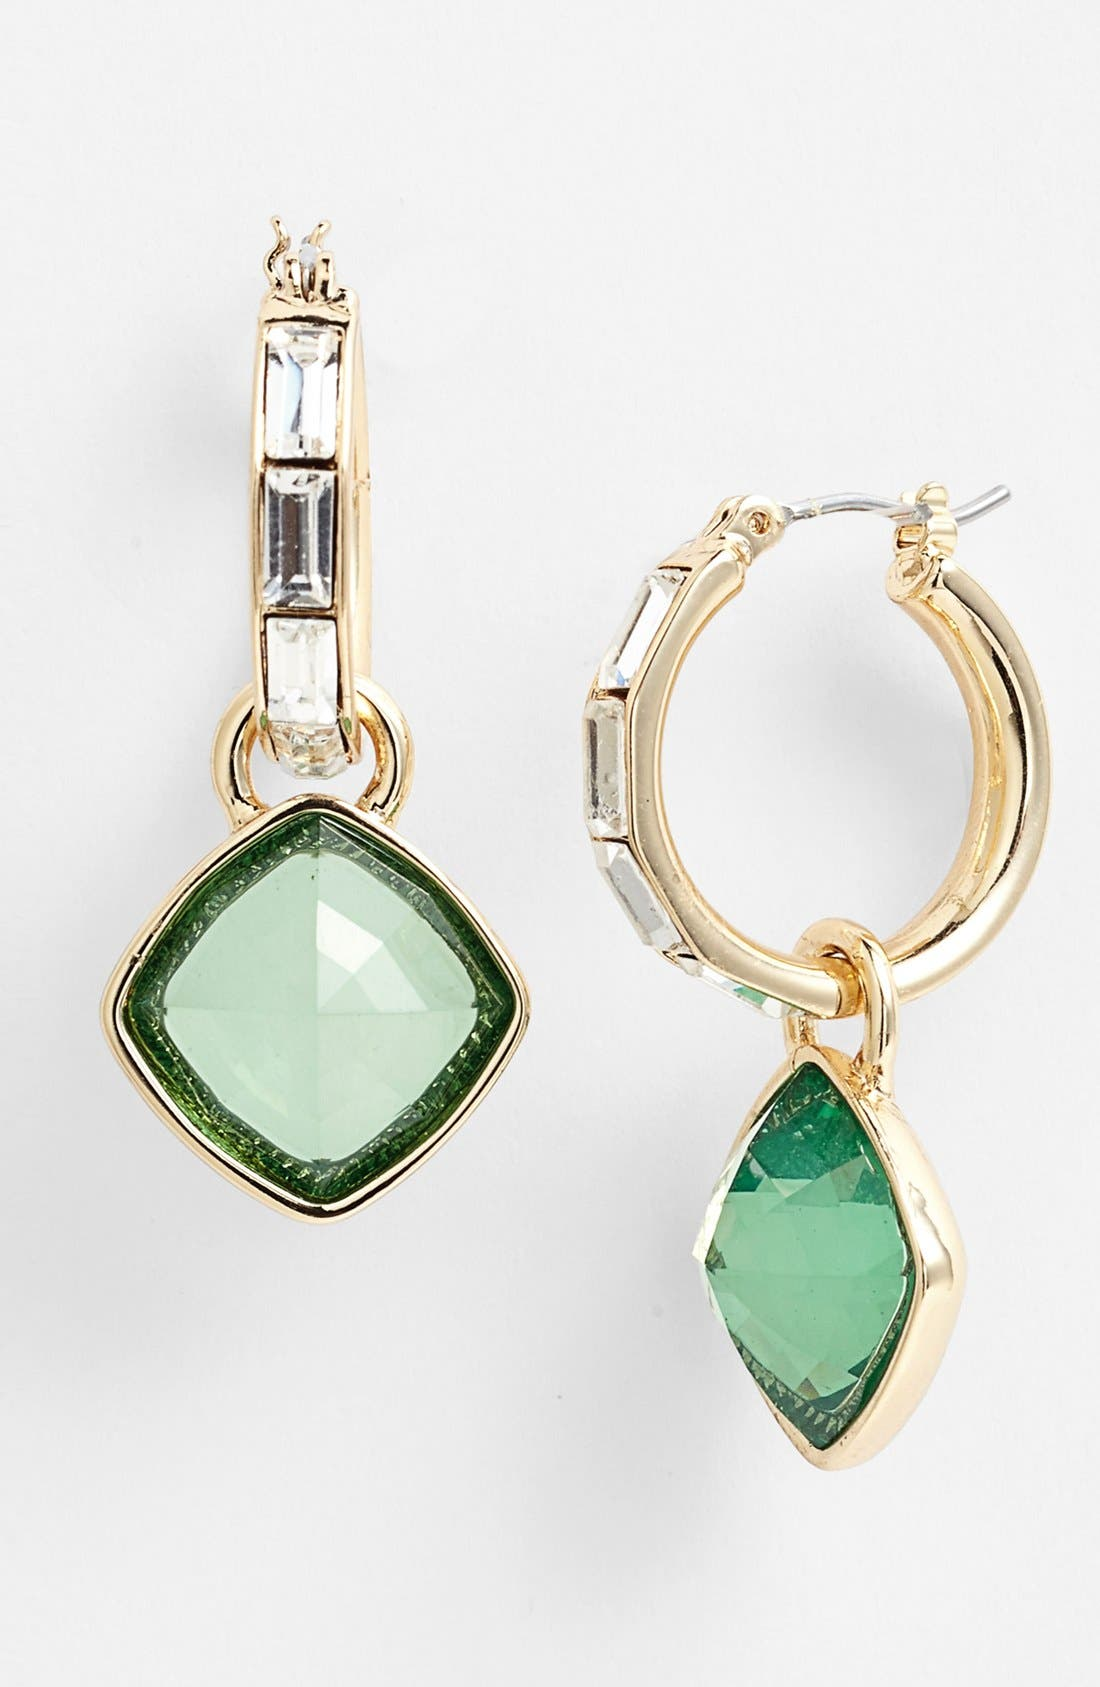 Main Image - Anne Klein Cushion Cut Stone Drop Earrings